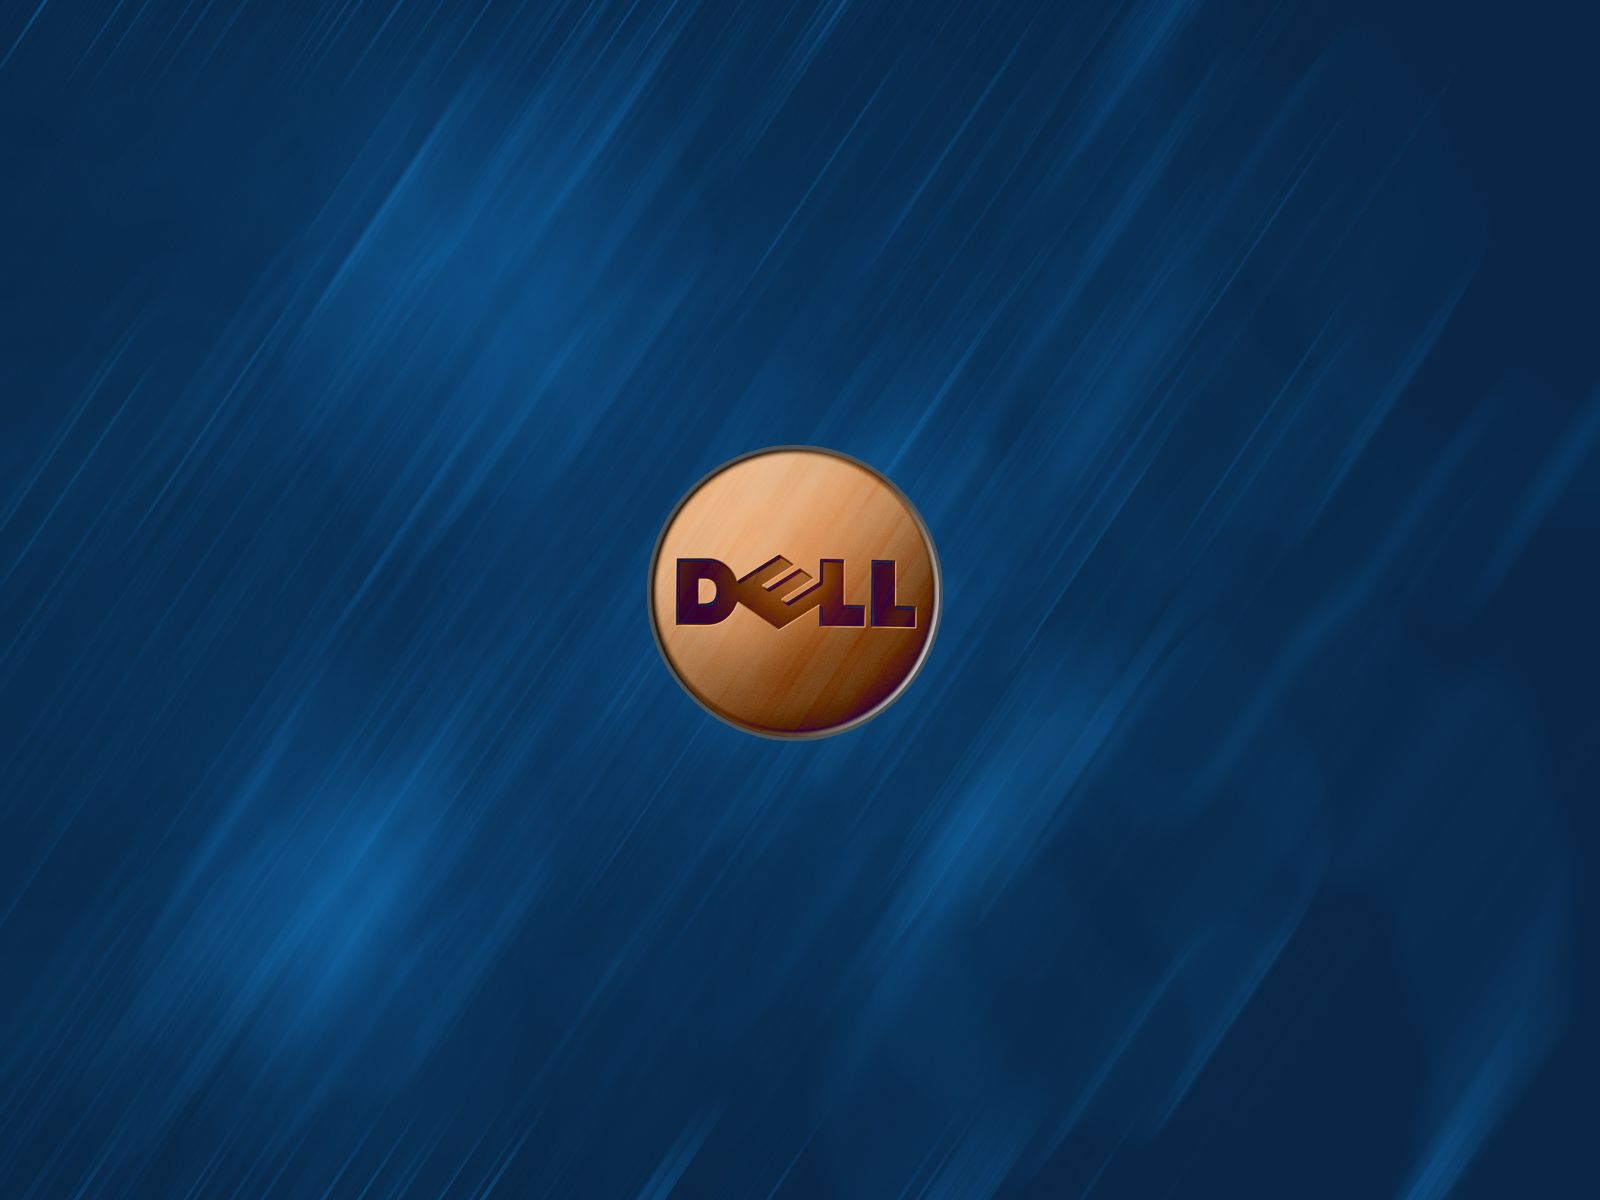 HD Dell Backgrounds Dell Wallpaper For Windows